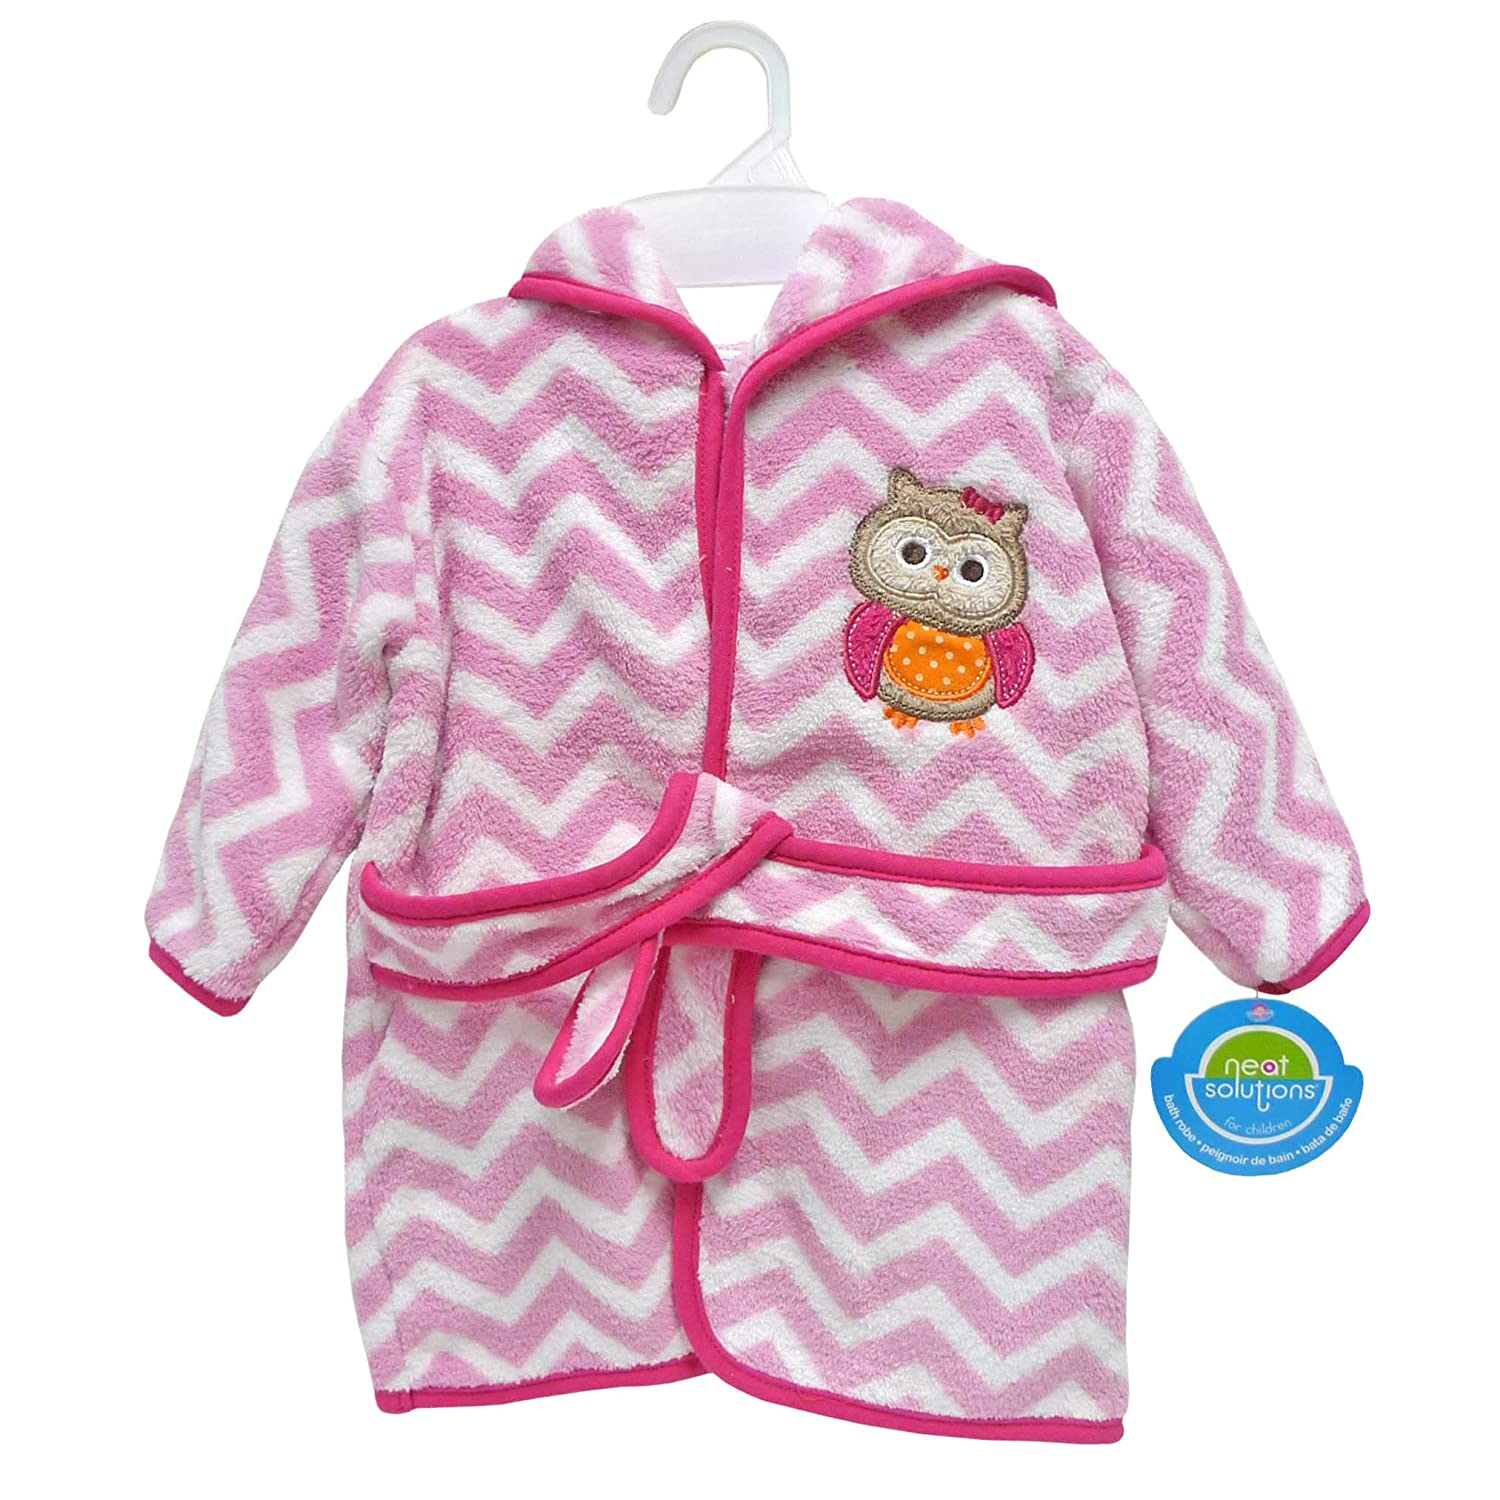 0-9 Months Neat Solutions Extra Soft /& Warm Hooded Baby Bathrobe Curious Owl